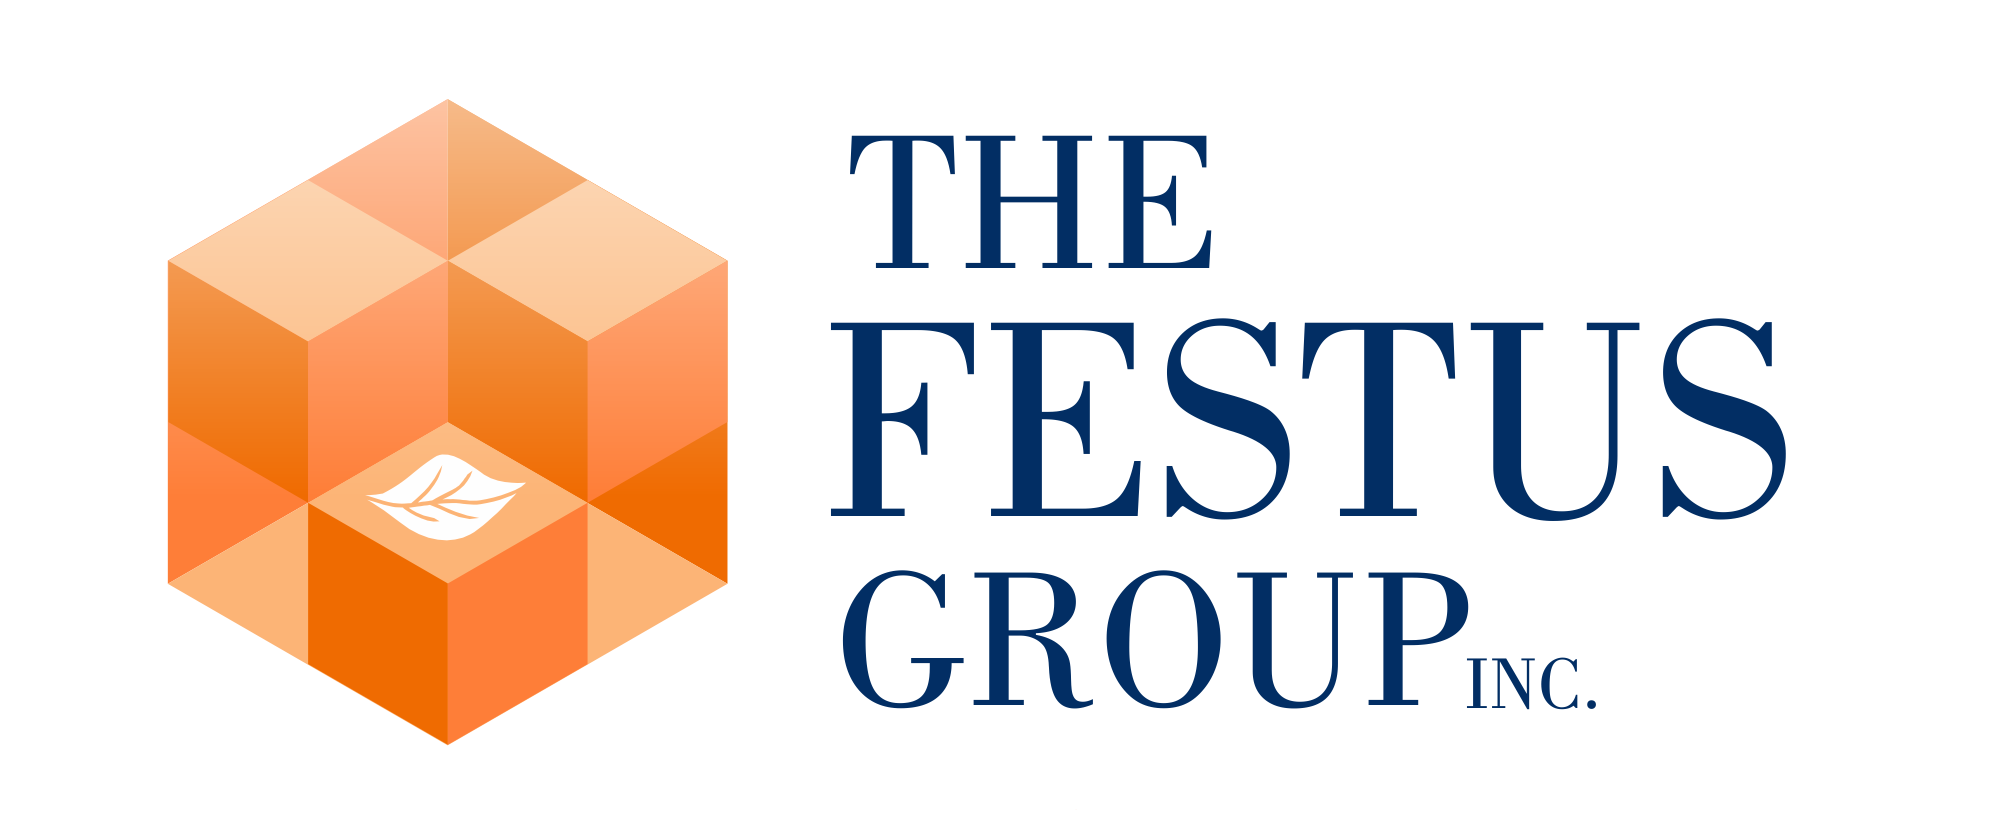 The Festus Group